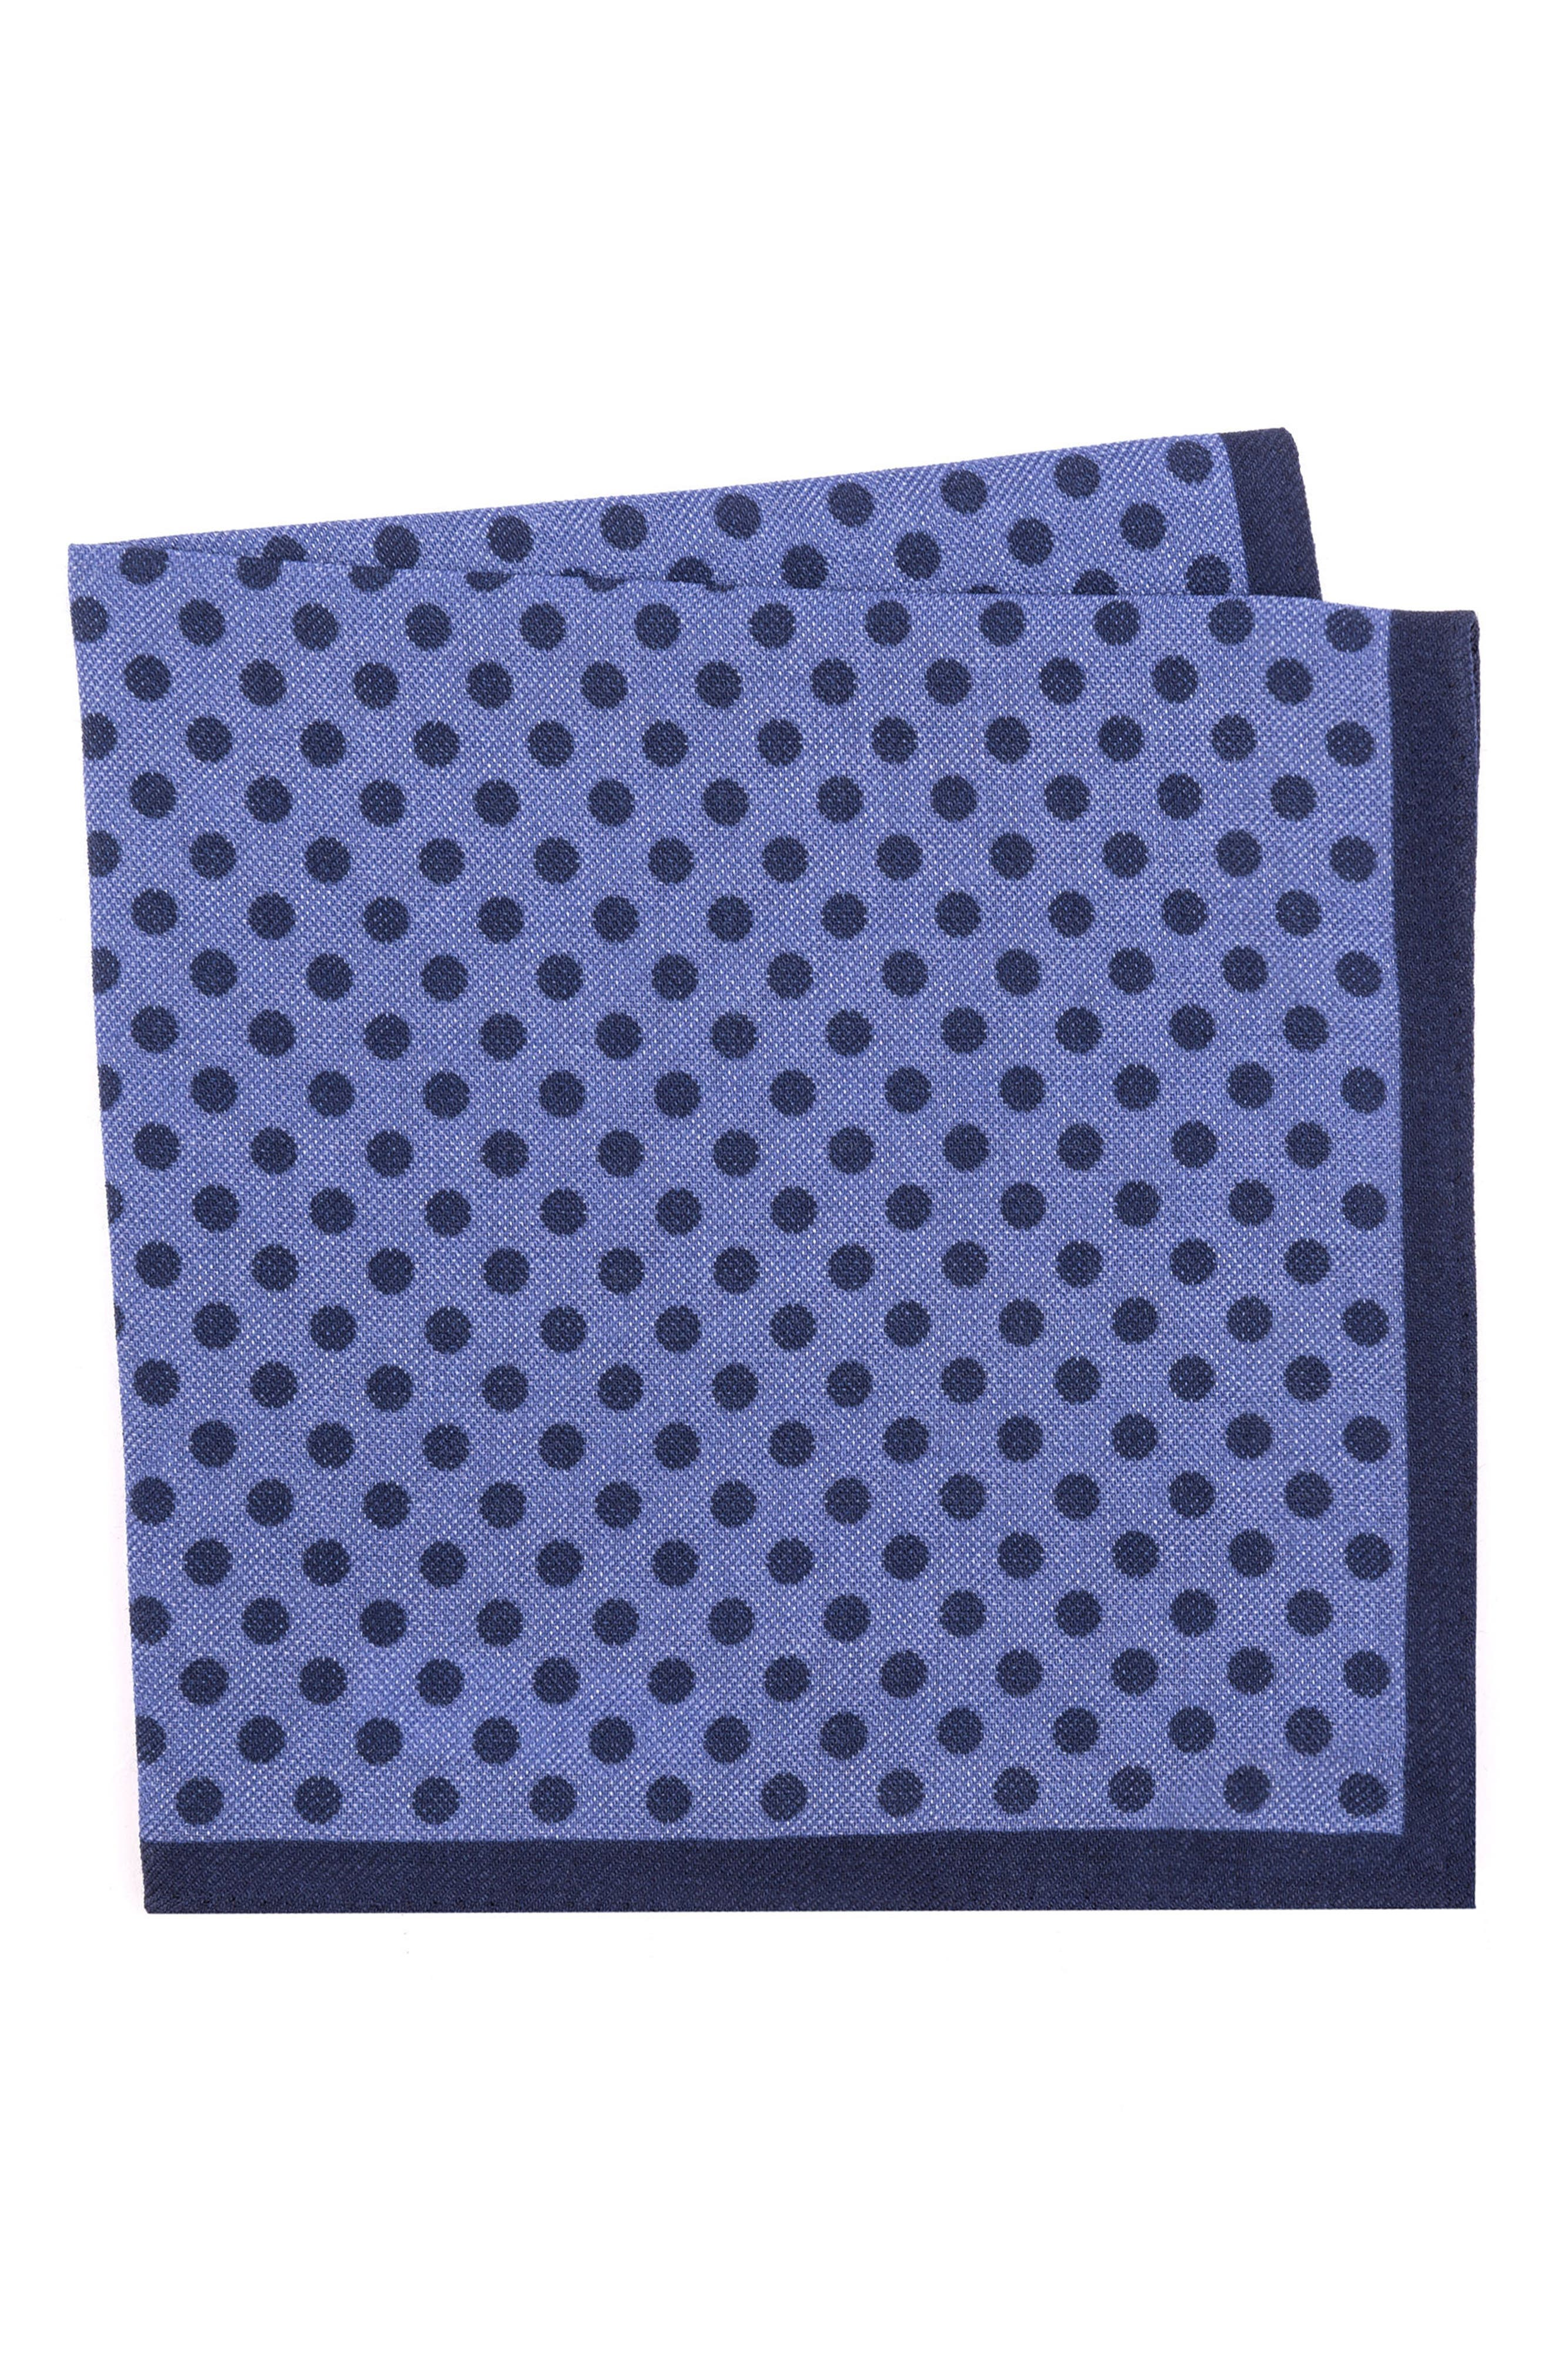 TED BAKER LONDON,                             Dot Wool Pocket Square,                             Main thumbnail 1, color,                             400